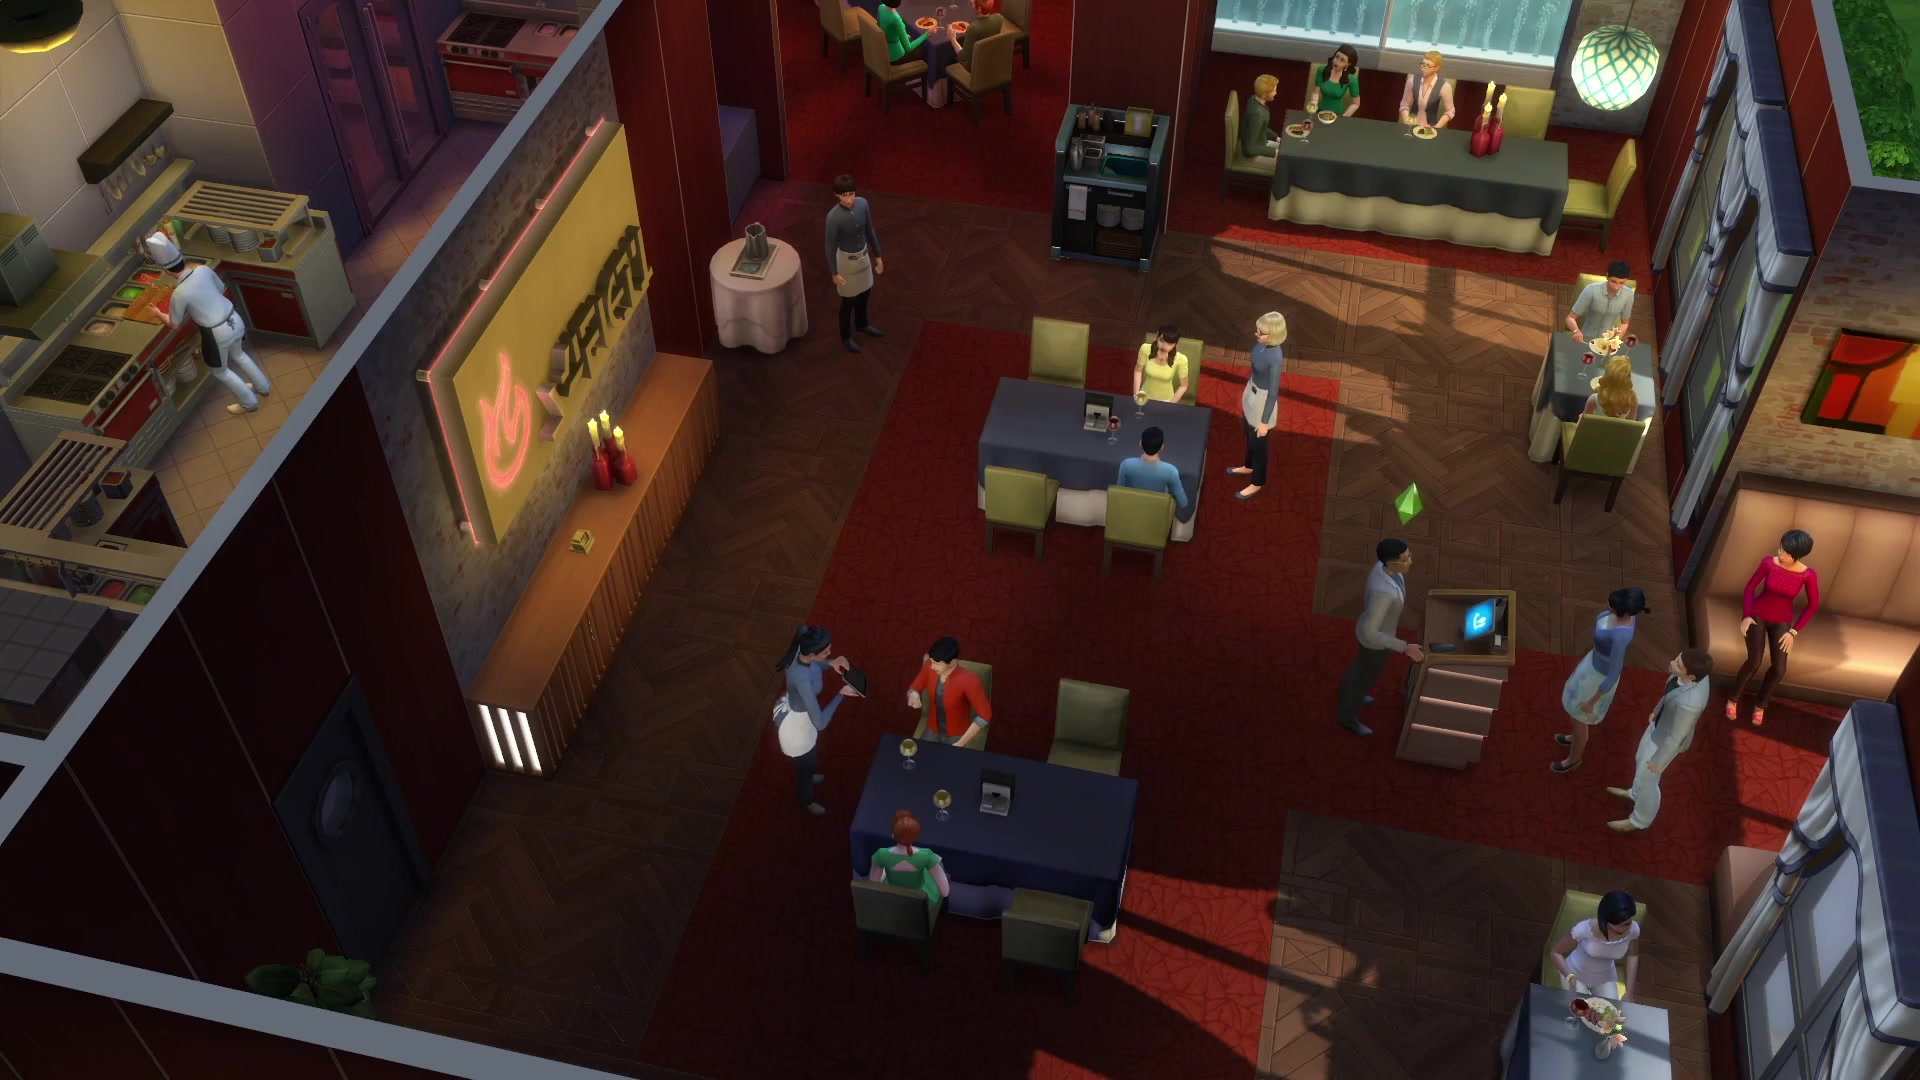 The-Sims-4-Dine-Out-Official-Trailer-1348.jpg